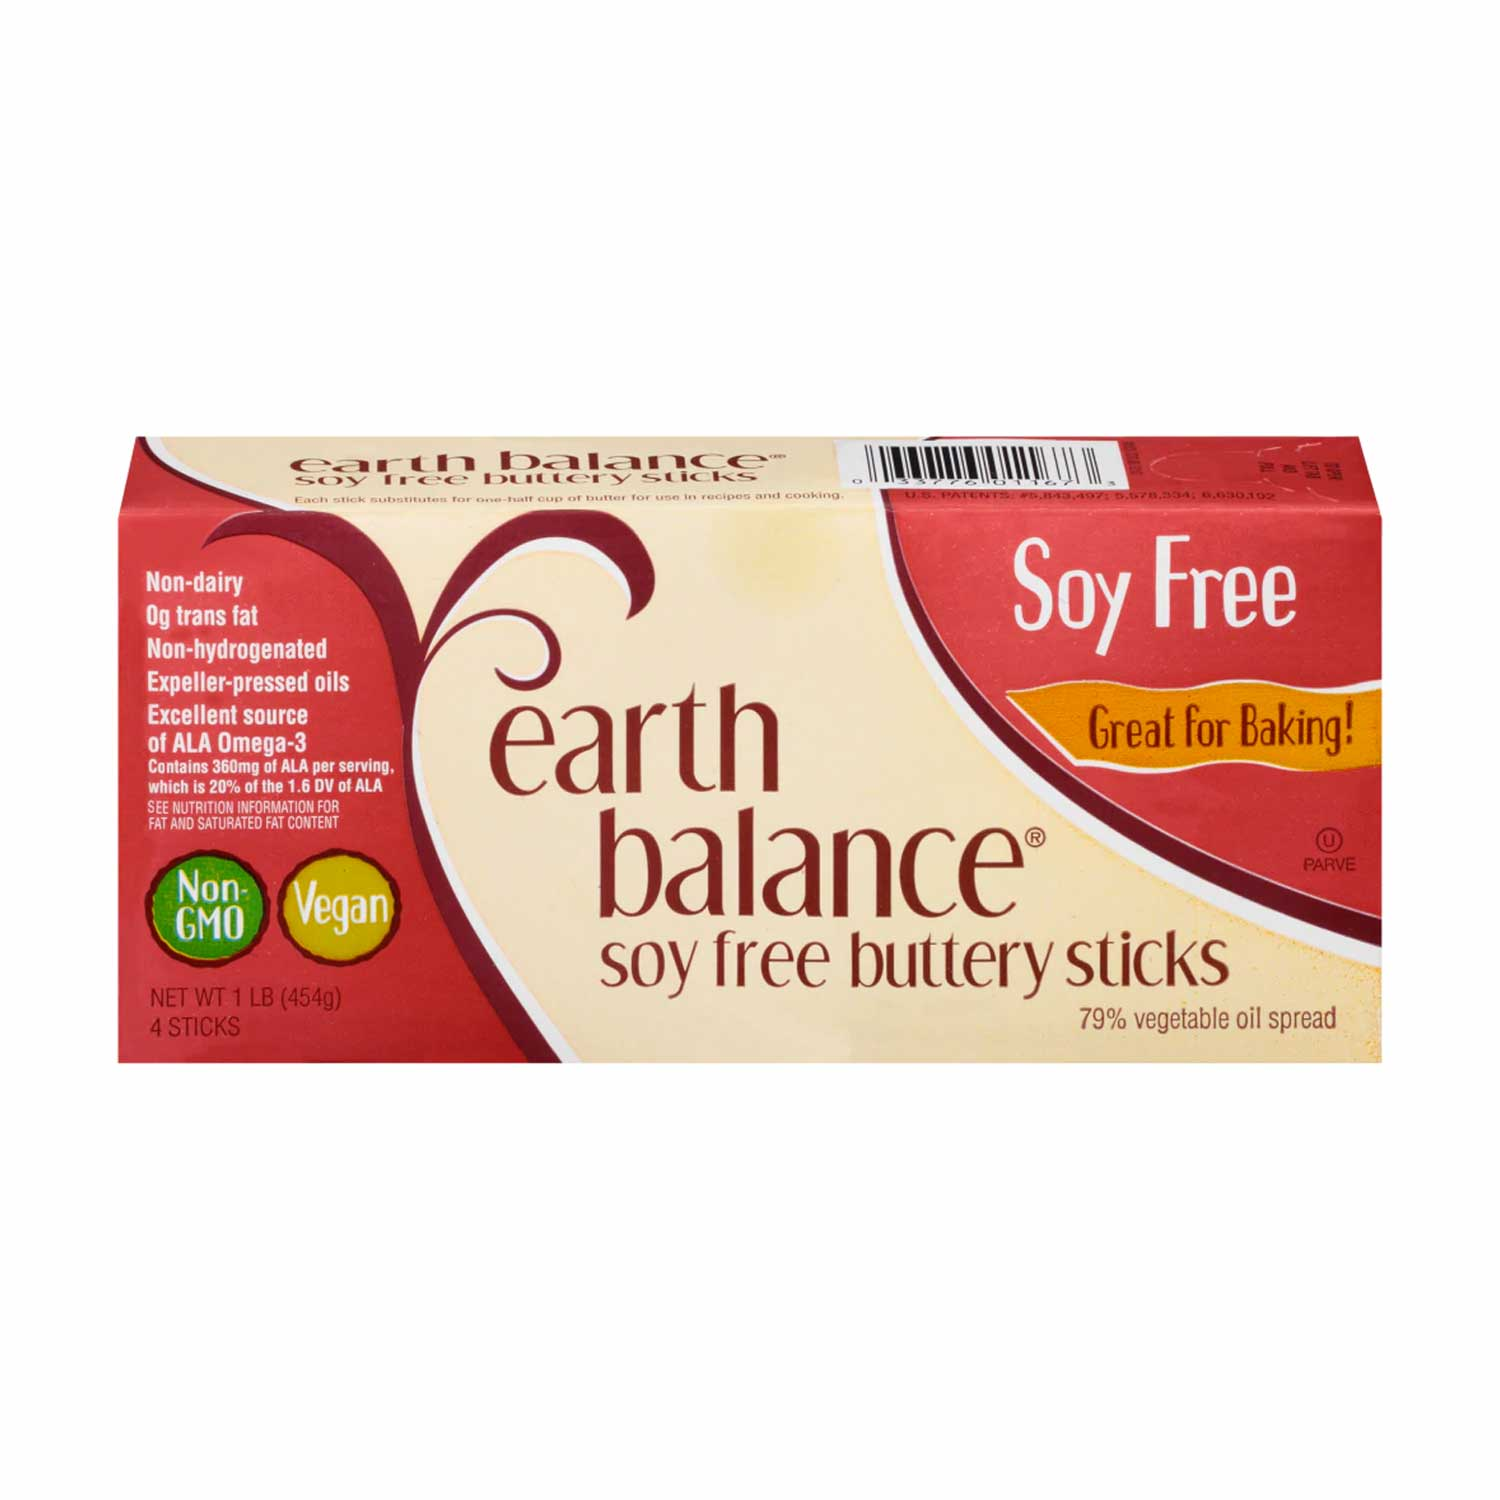 Buttery Sticks, Soy Free